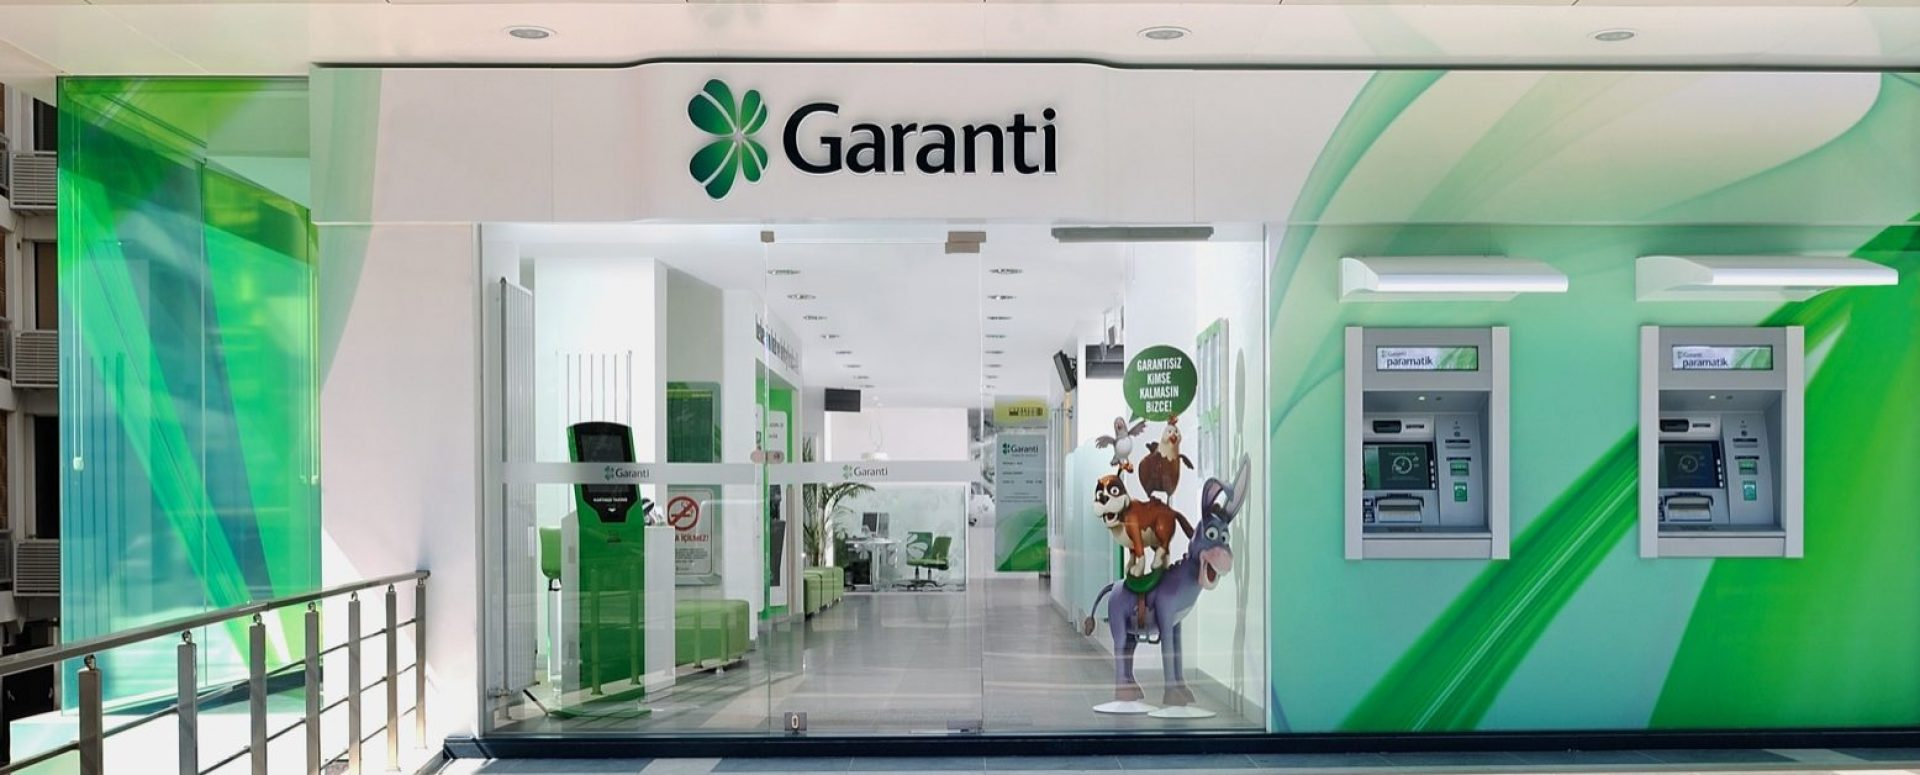 Garanti ranked among the European leaders in online banking | BBVA